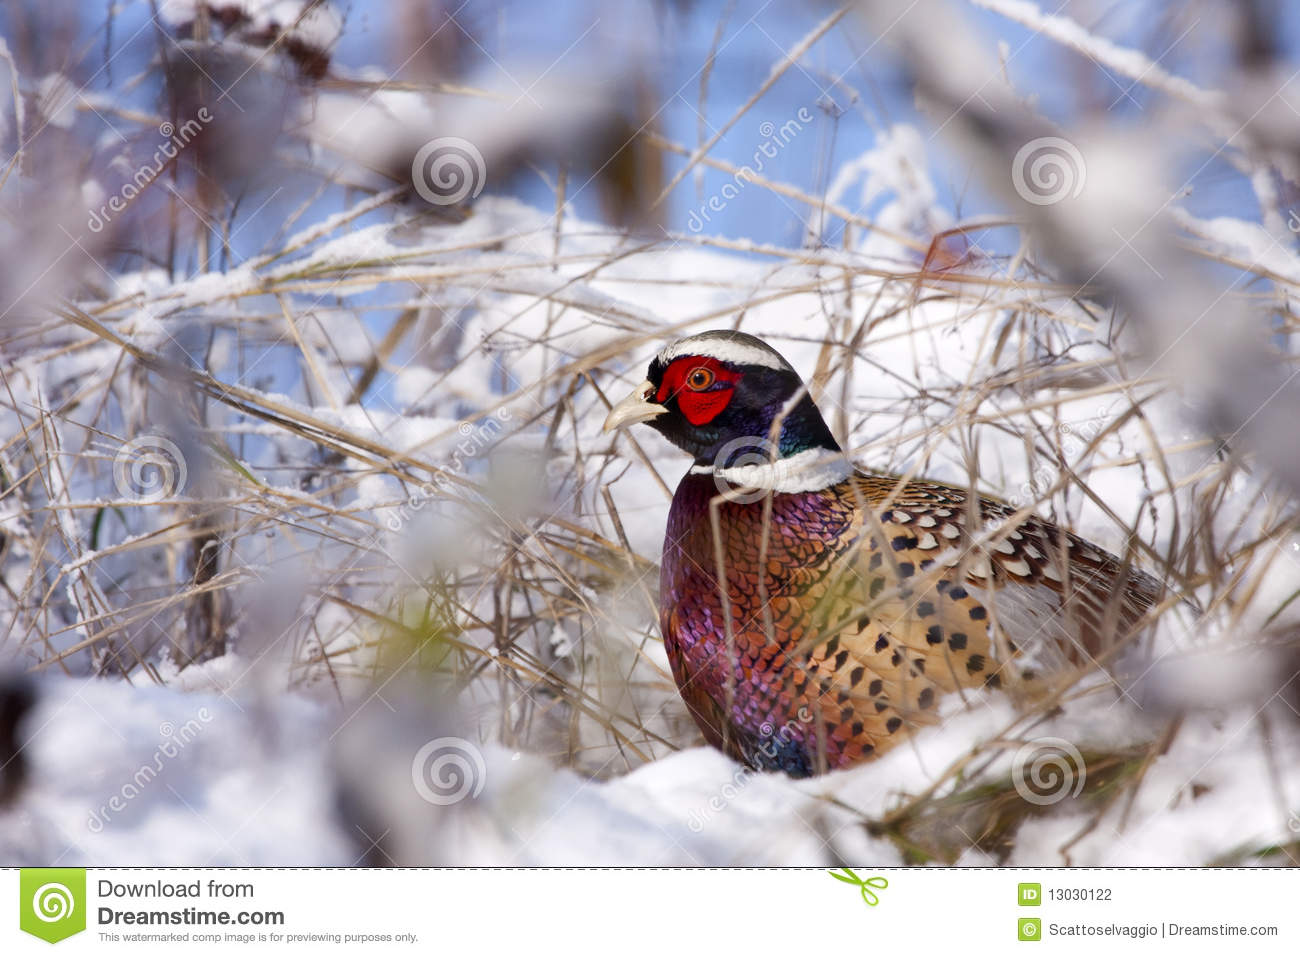 Male Pheasant in the snow.